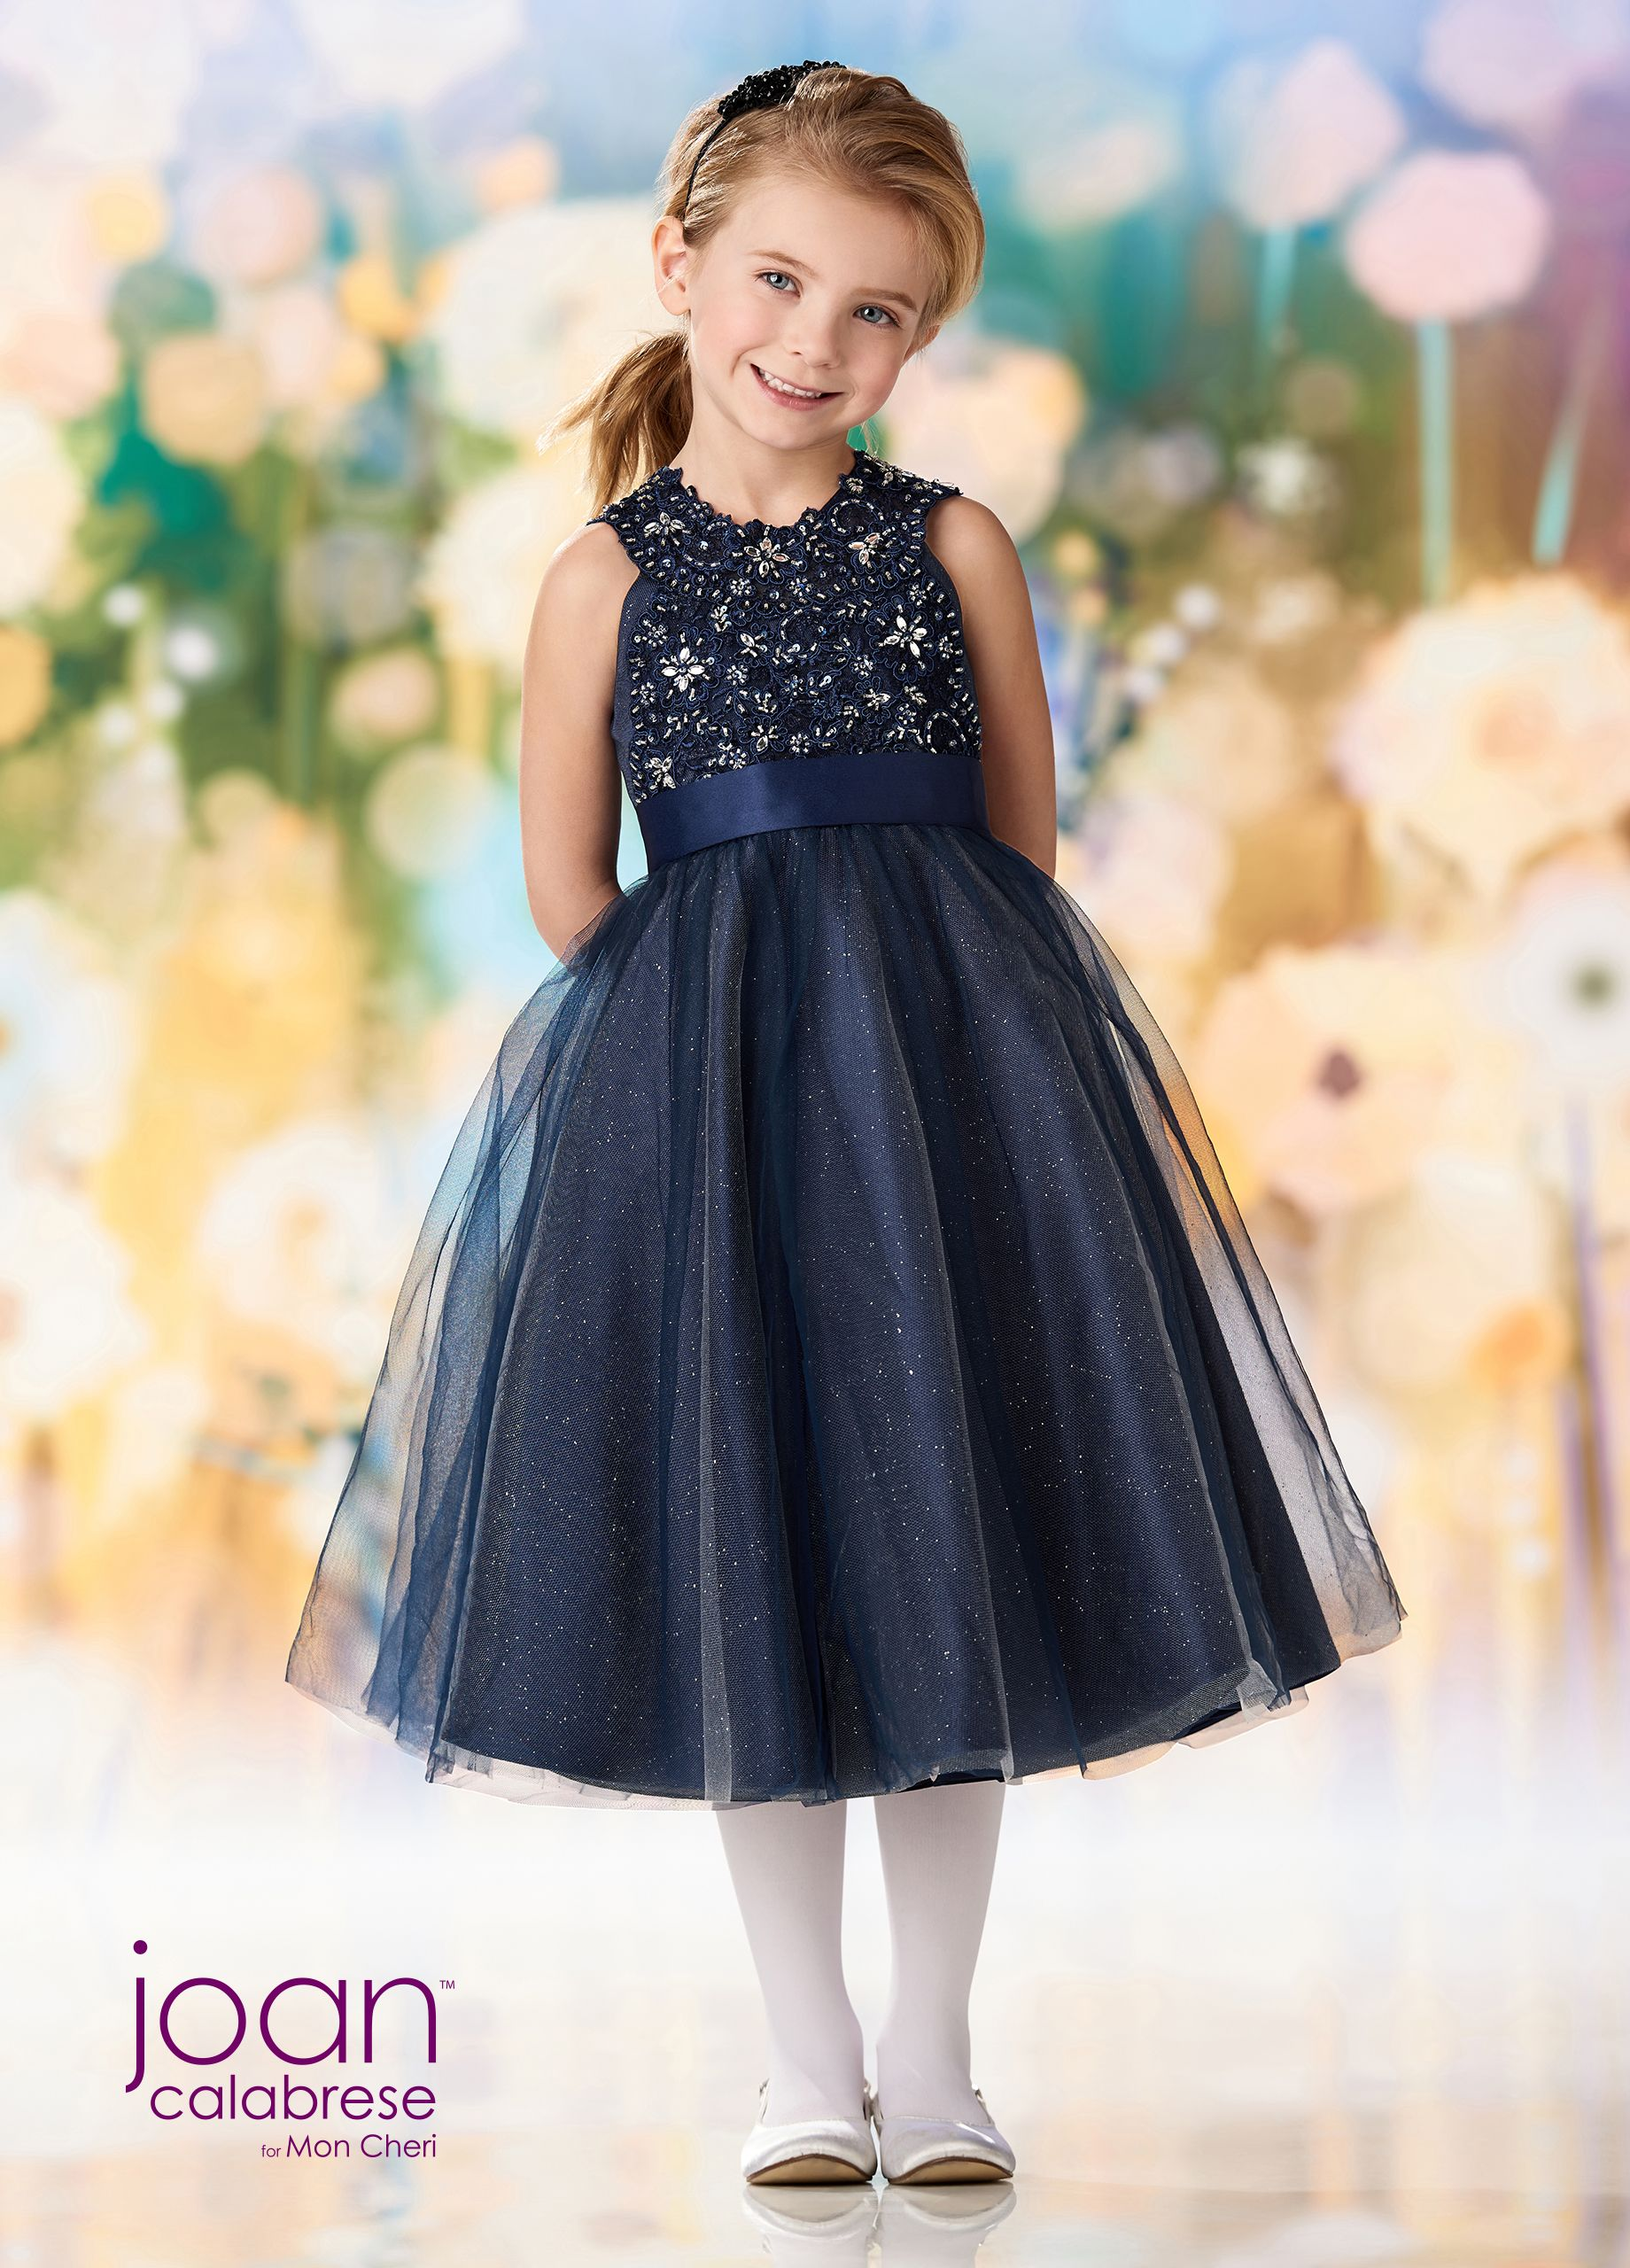 ea9aec9e4 Joan Calabrese For Mon Cheri 218363 - Satin, tulle, glitter tulle and lace  mid